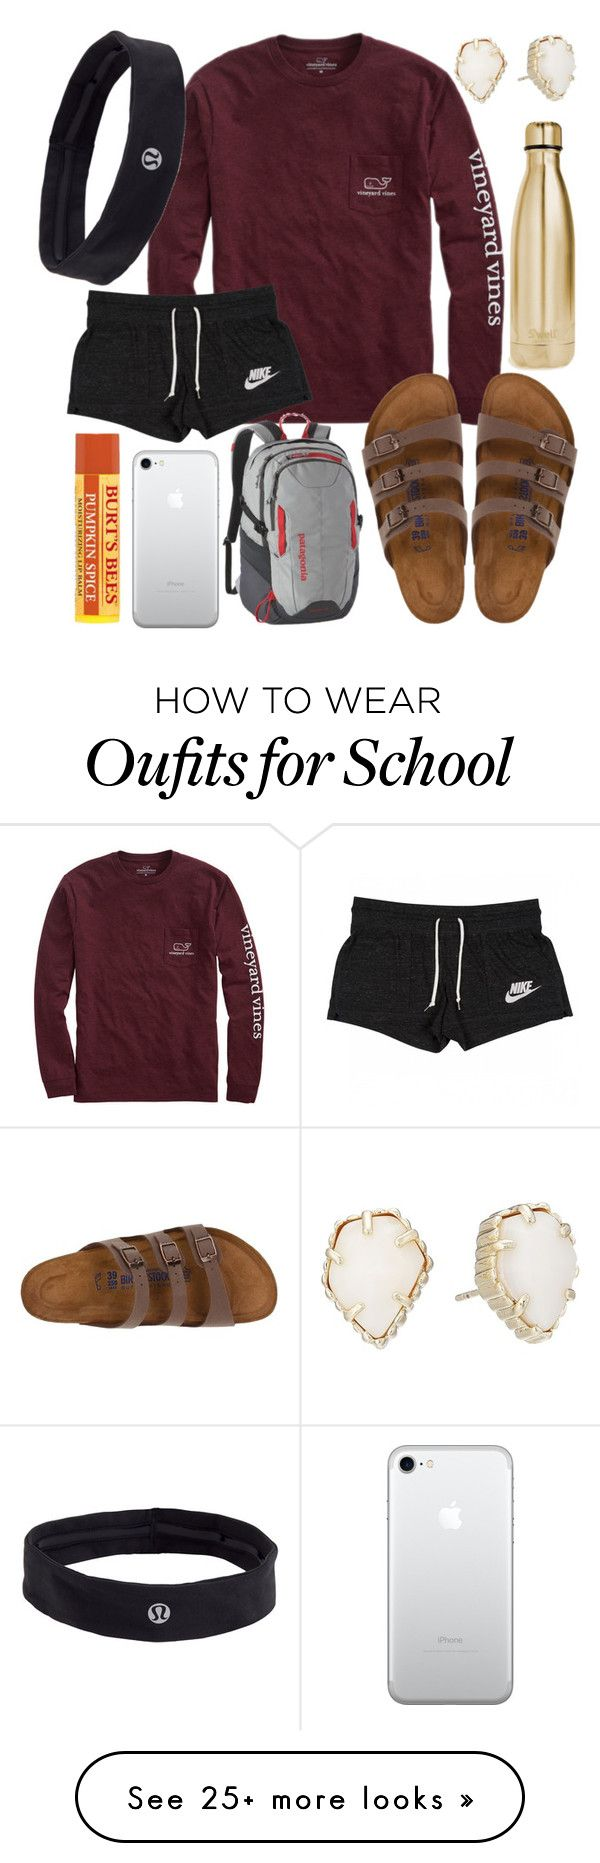 """School outfit"" by jadenriley21 on Polyvore featuring Vineyard Vines, Birkenstock, NIKE, Patagonia, S'well, Kendra Scott and lululemon"